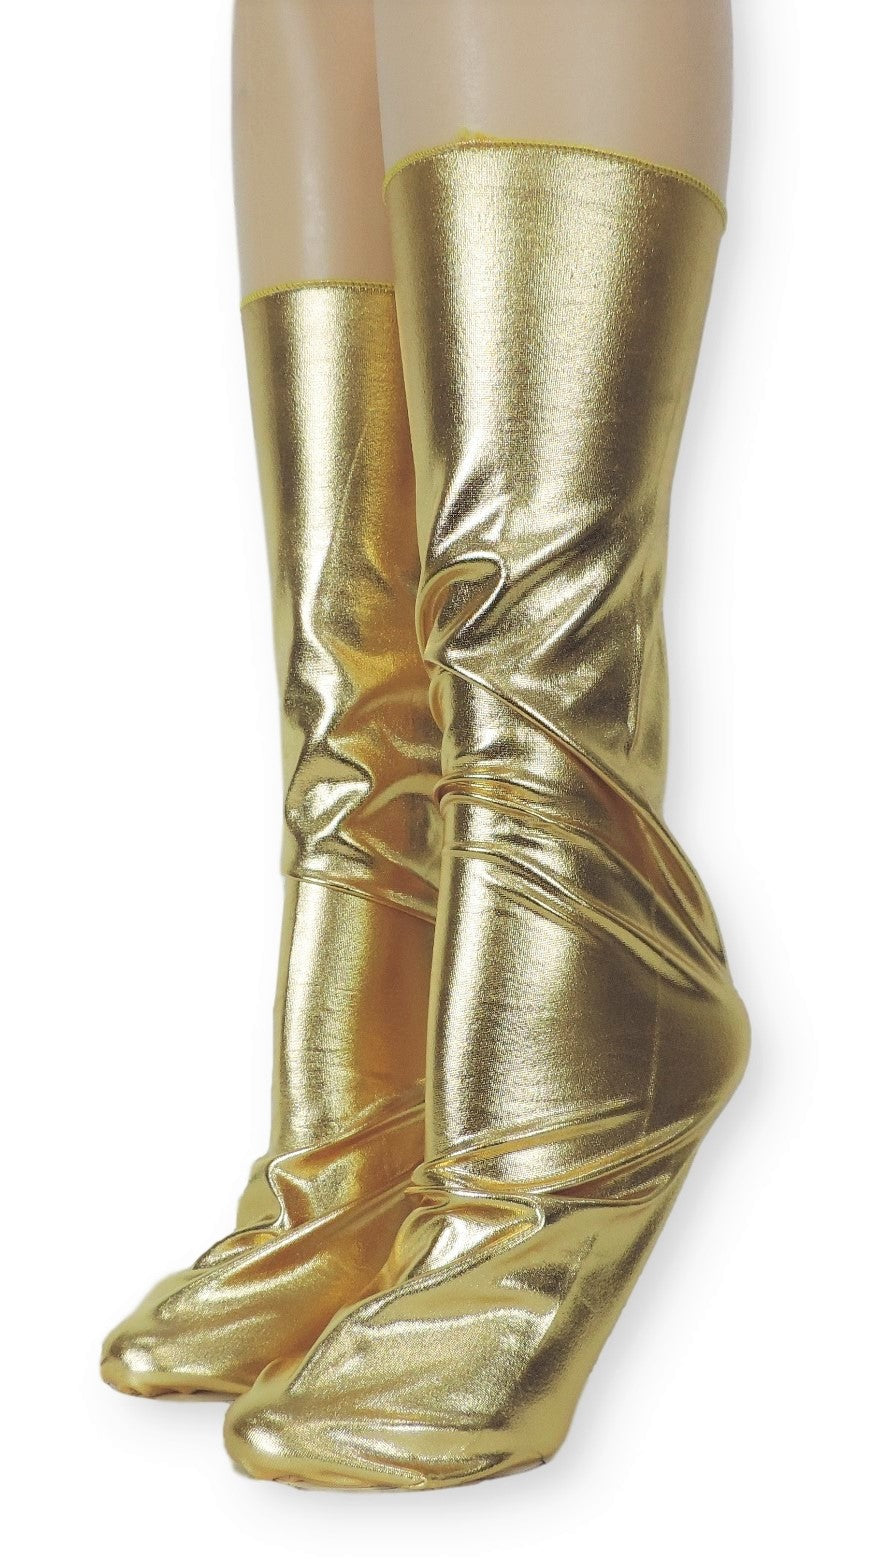 Metallic Gold Reflective Socks - Global Trendz Fashion®